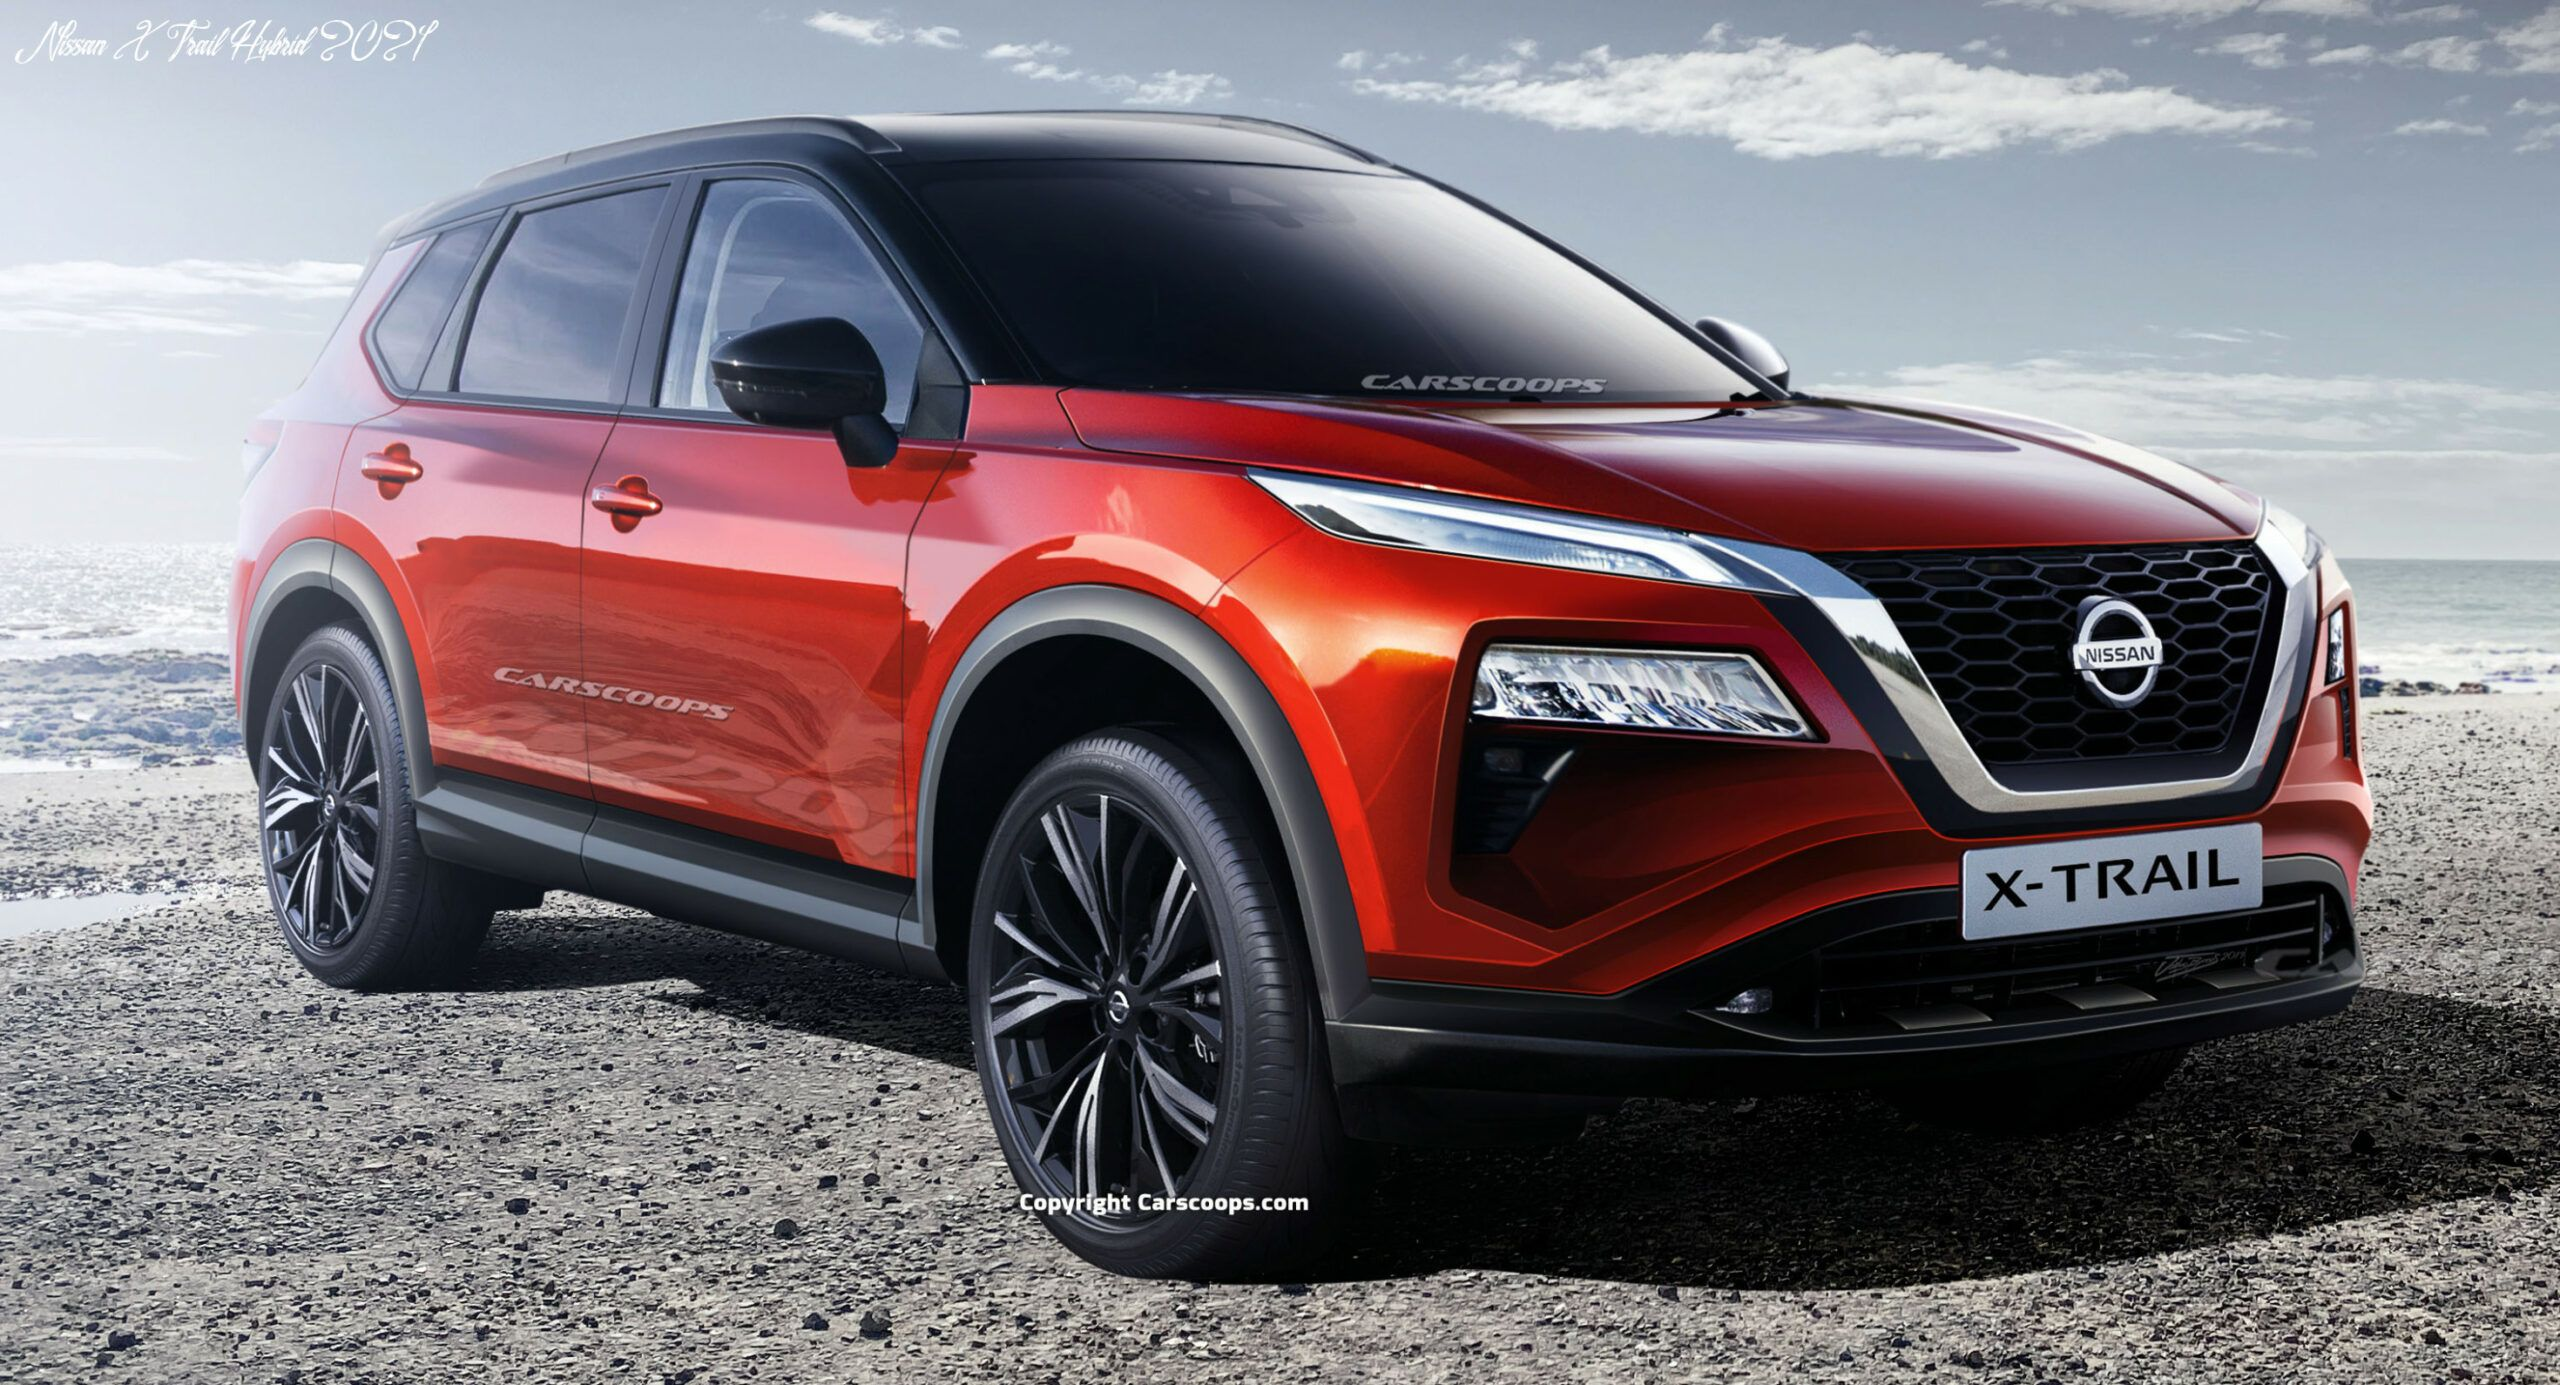 Nissan X Trail Hybrid 2021 New Review In 2020 Nissan Rogue Nissan Armada Nissan